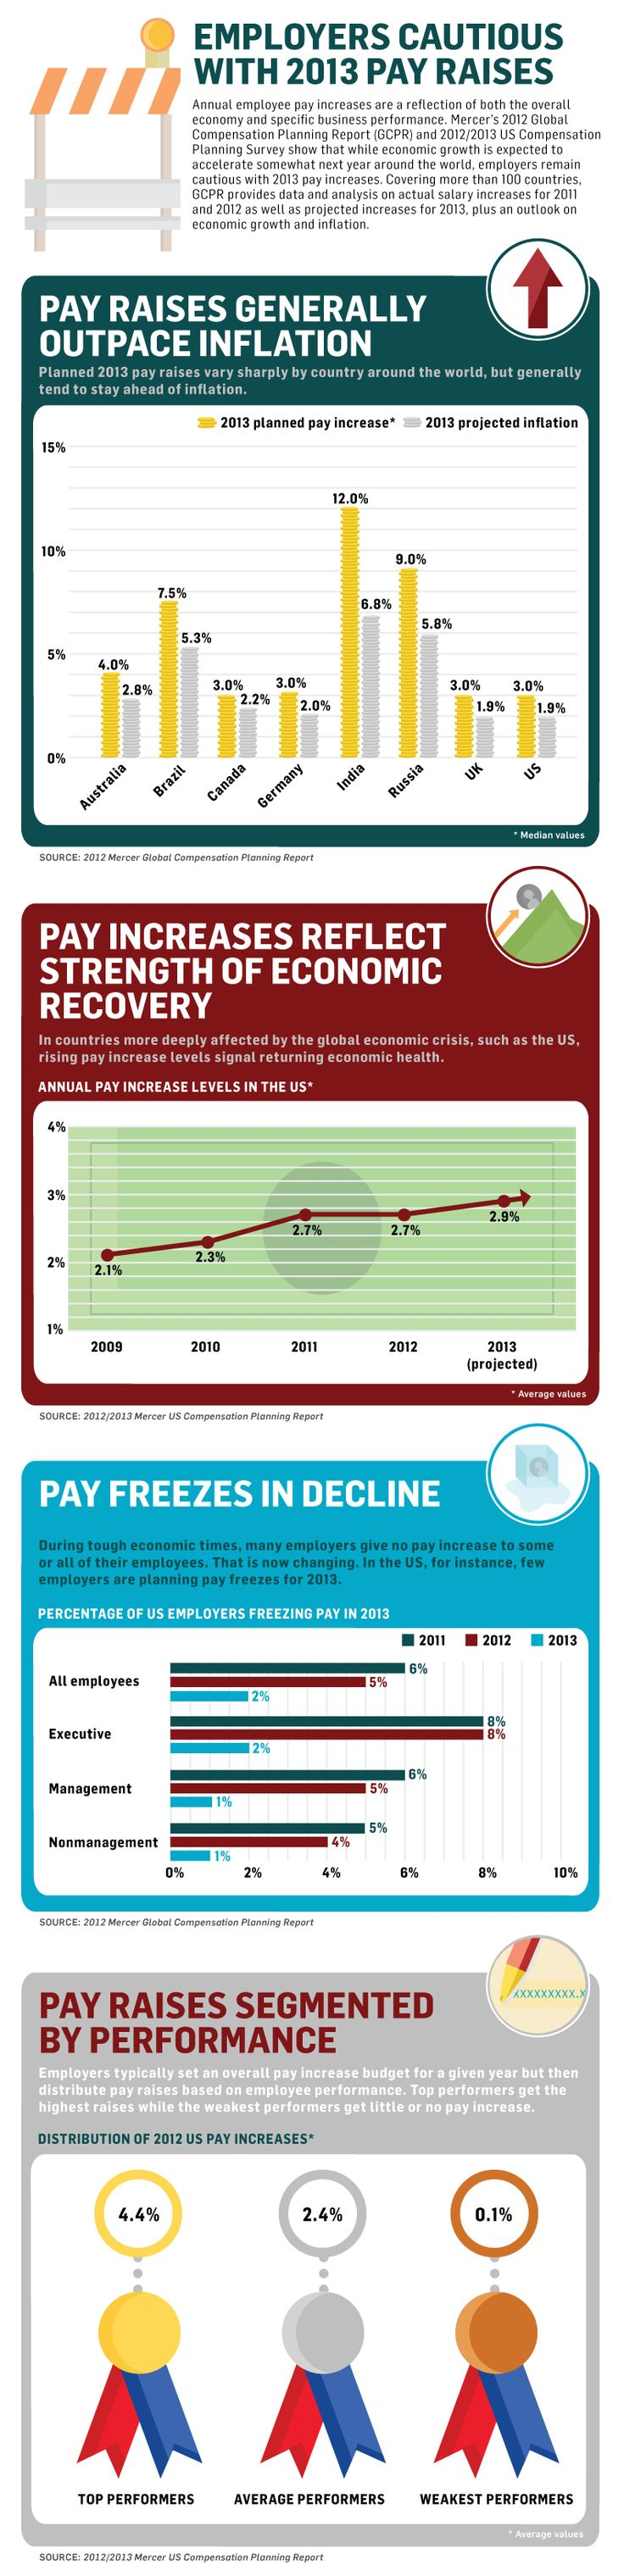 Us bank hr view paycheck - Employers Cautious With 2013 Pay Raises